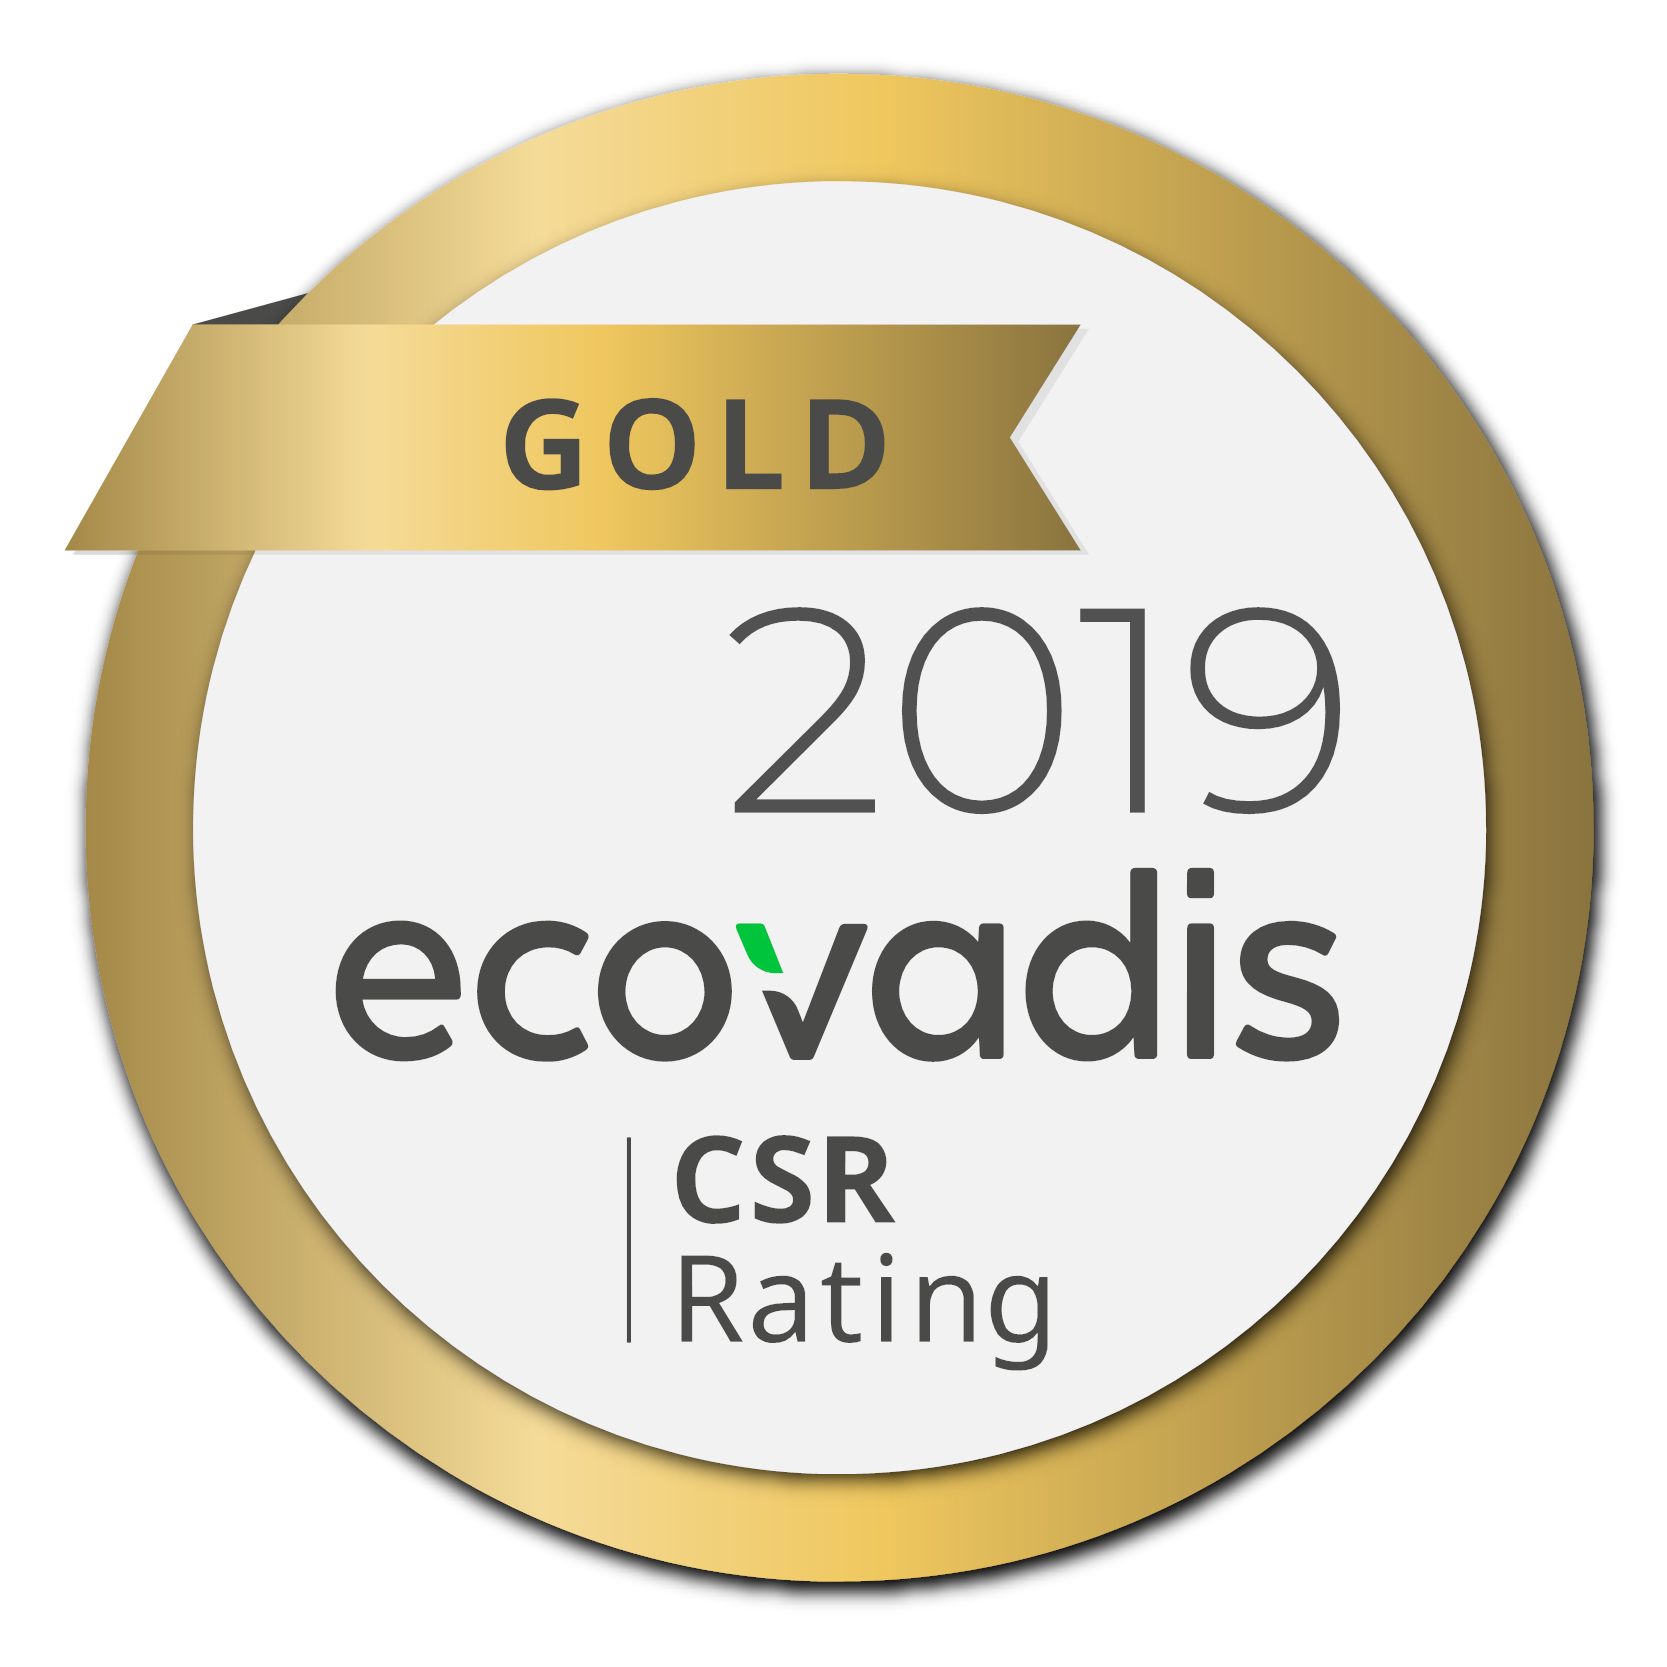 eco-vadis-gold-rating.png